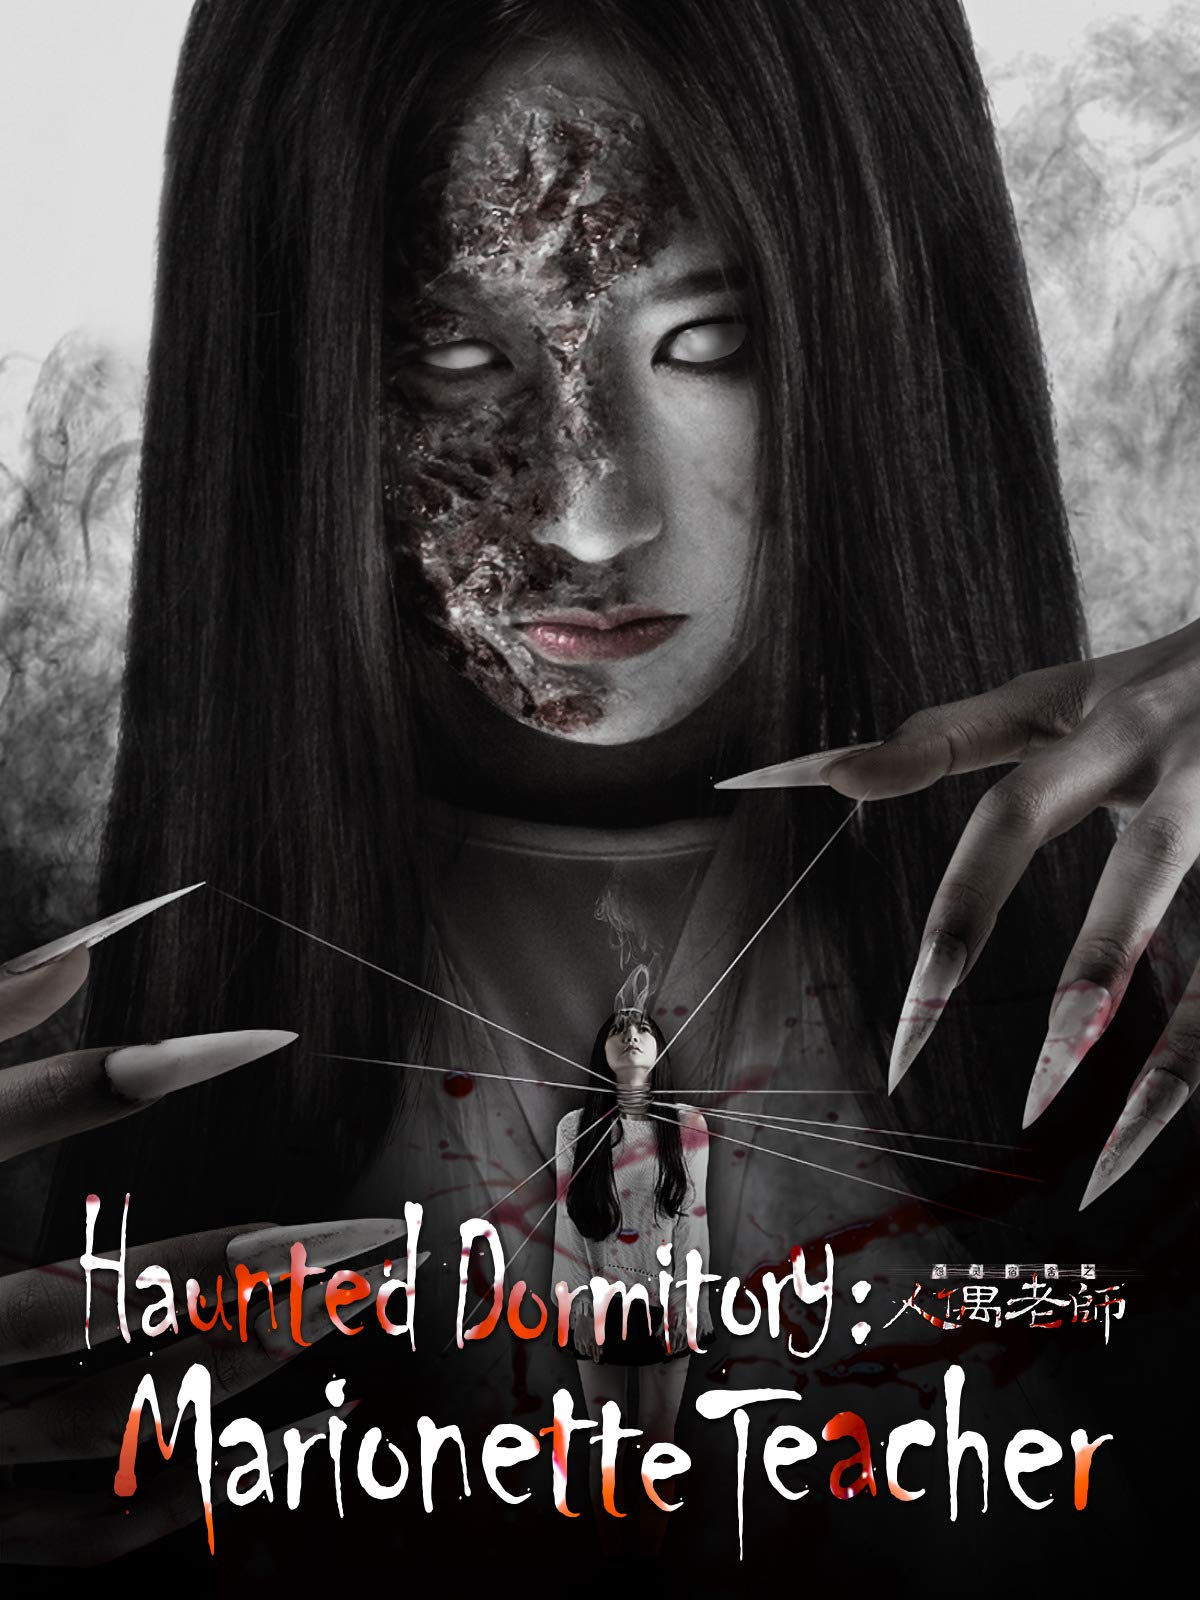 Haunted Dormitory Marionette Teacher on Amazon Prime Video UK